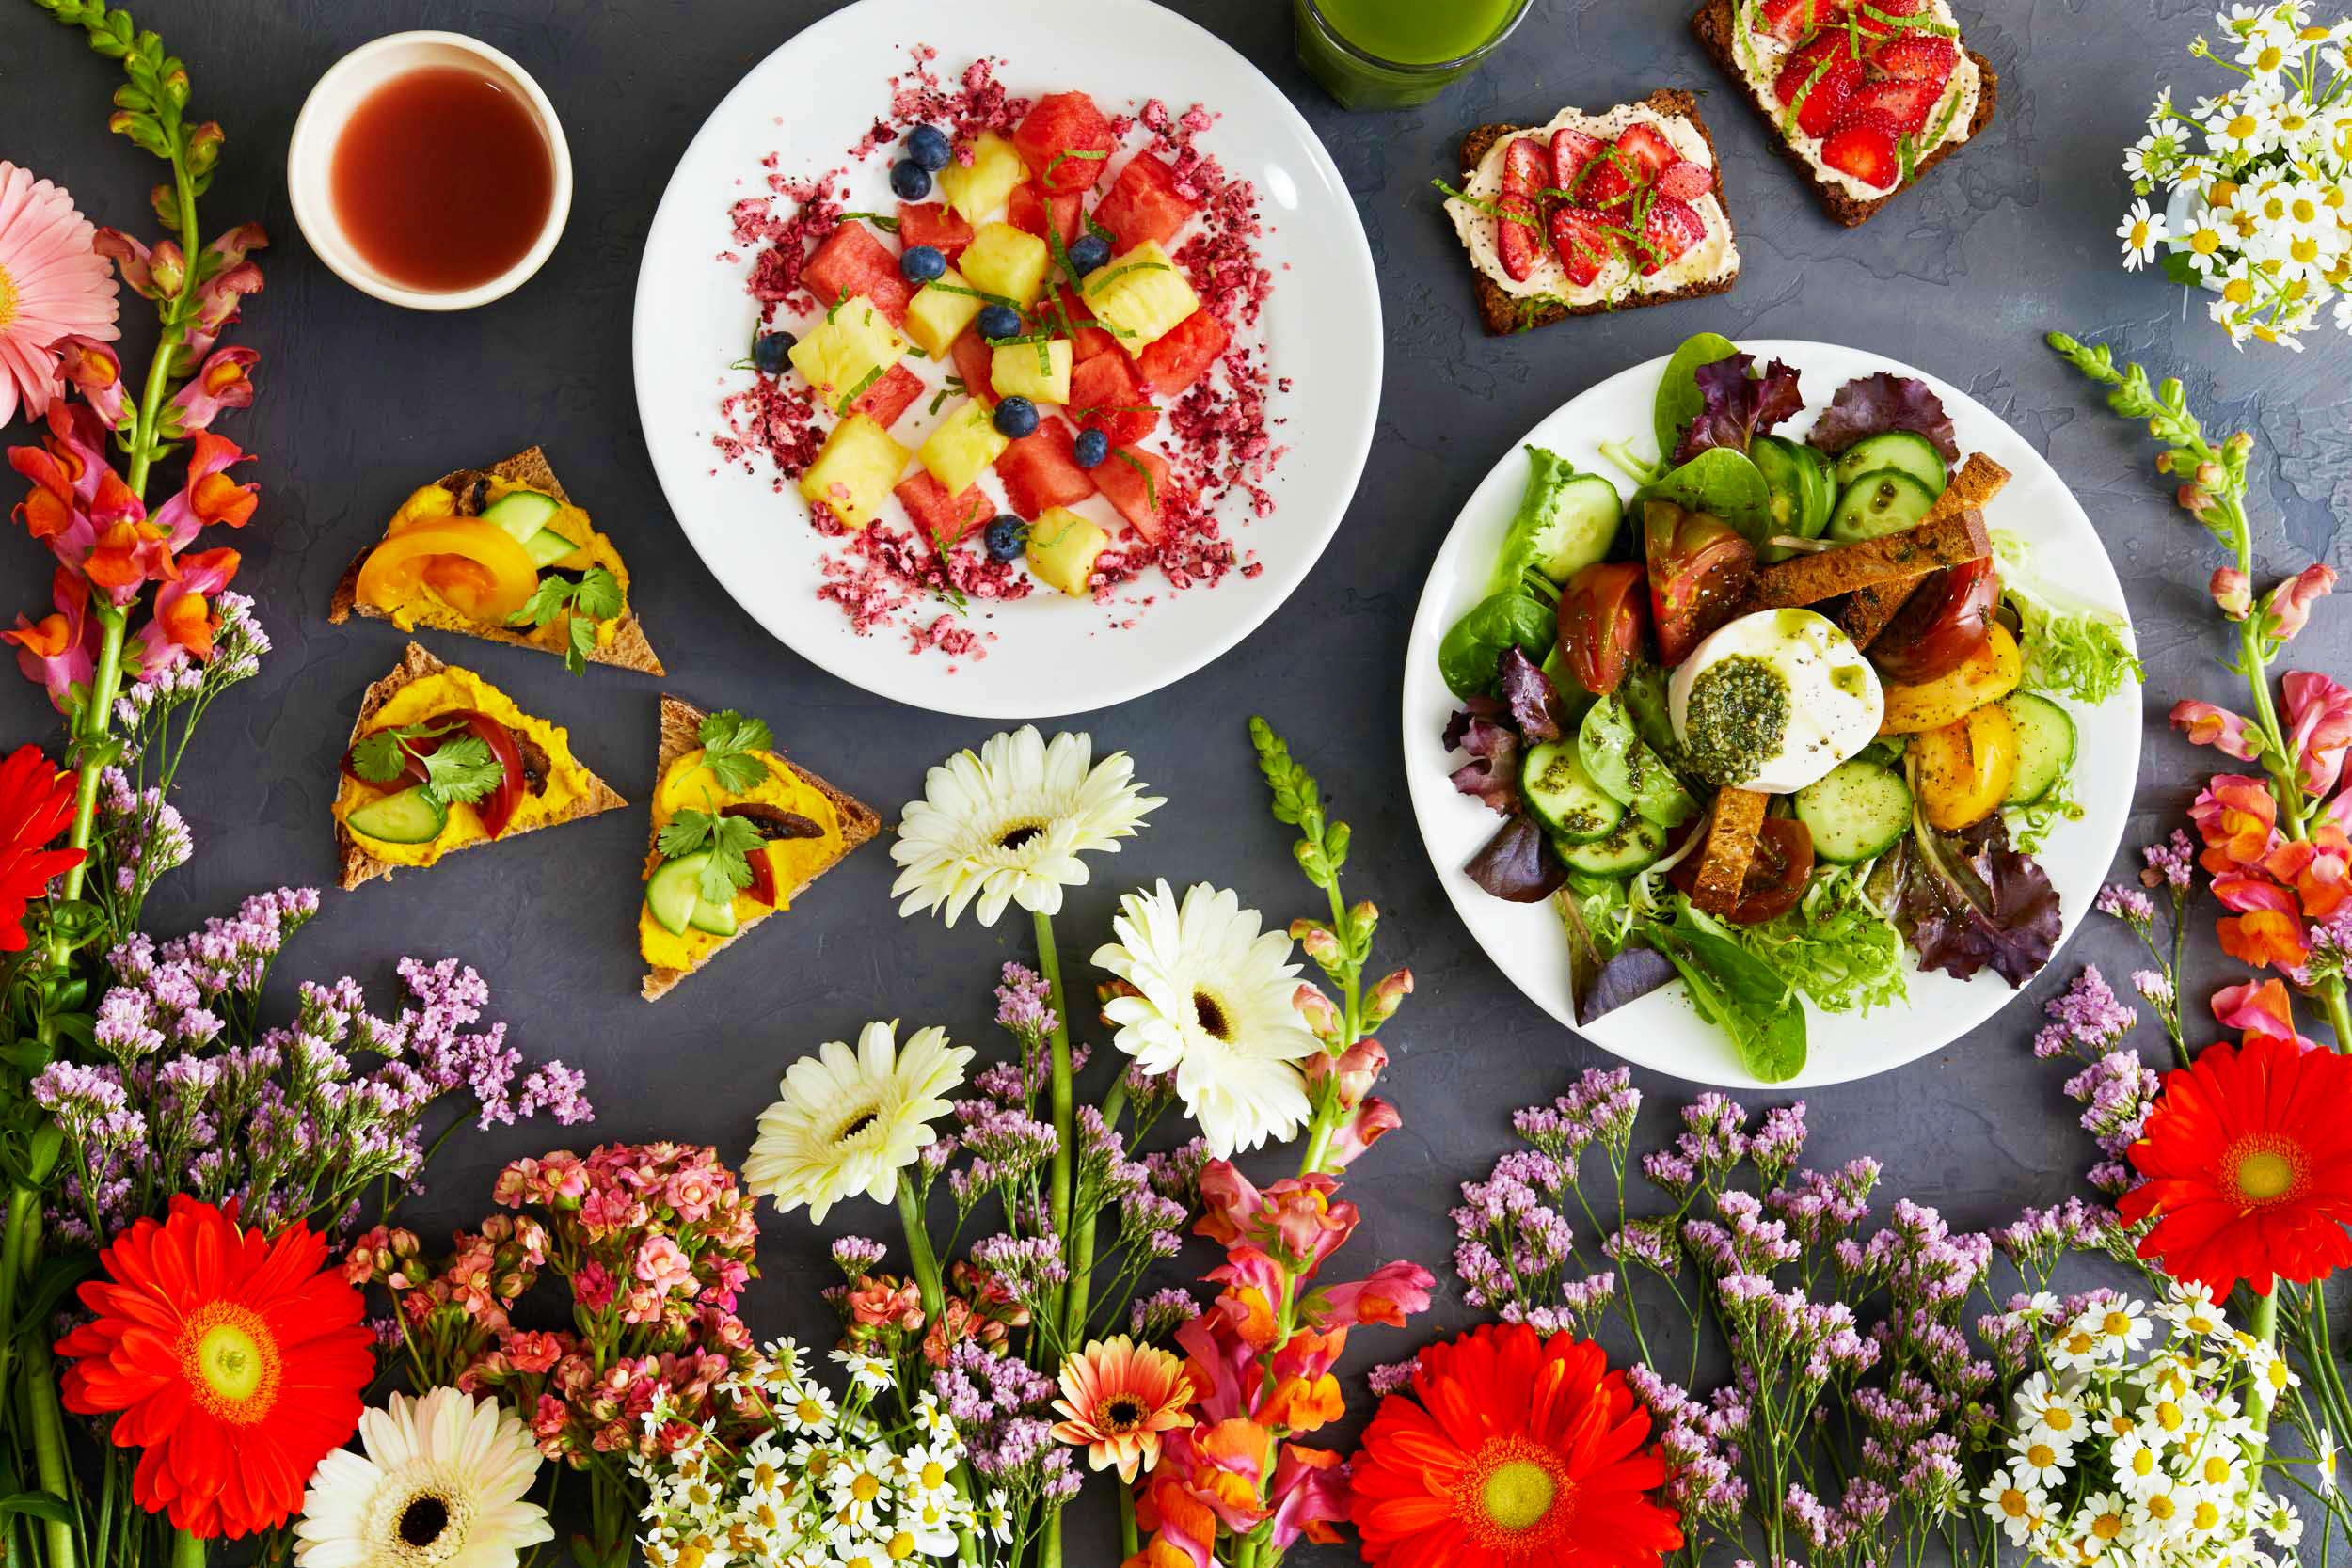 dominic-perri-le-pain-quotidien-flower-power-campaign-1